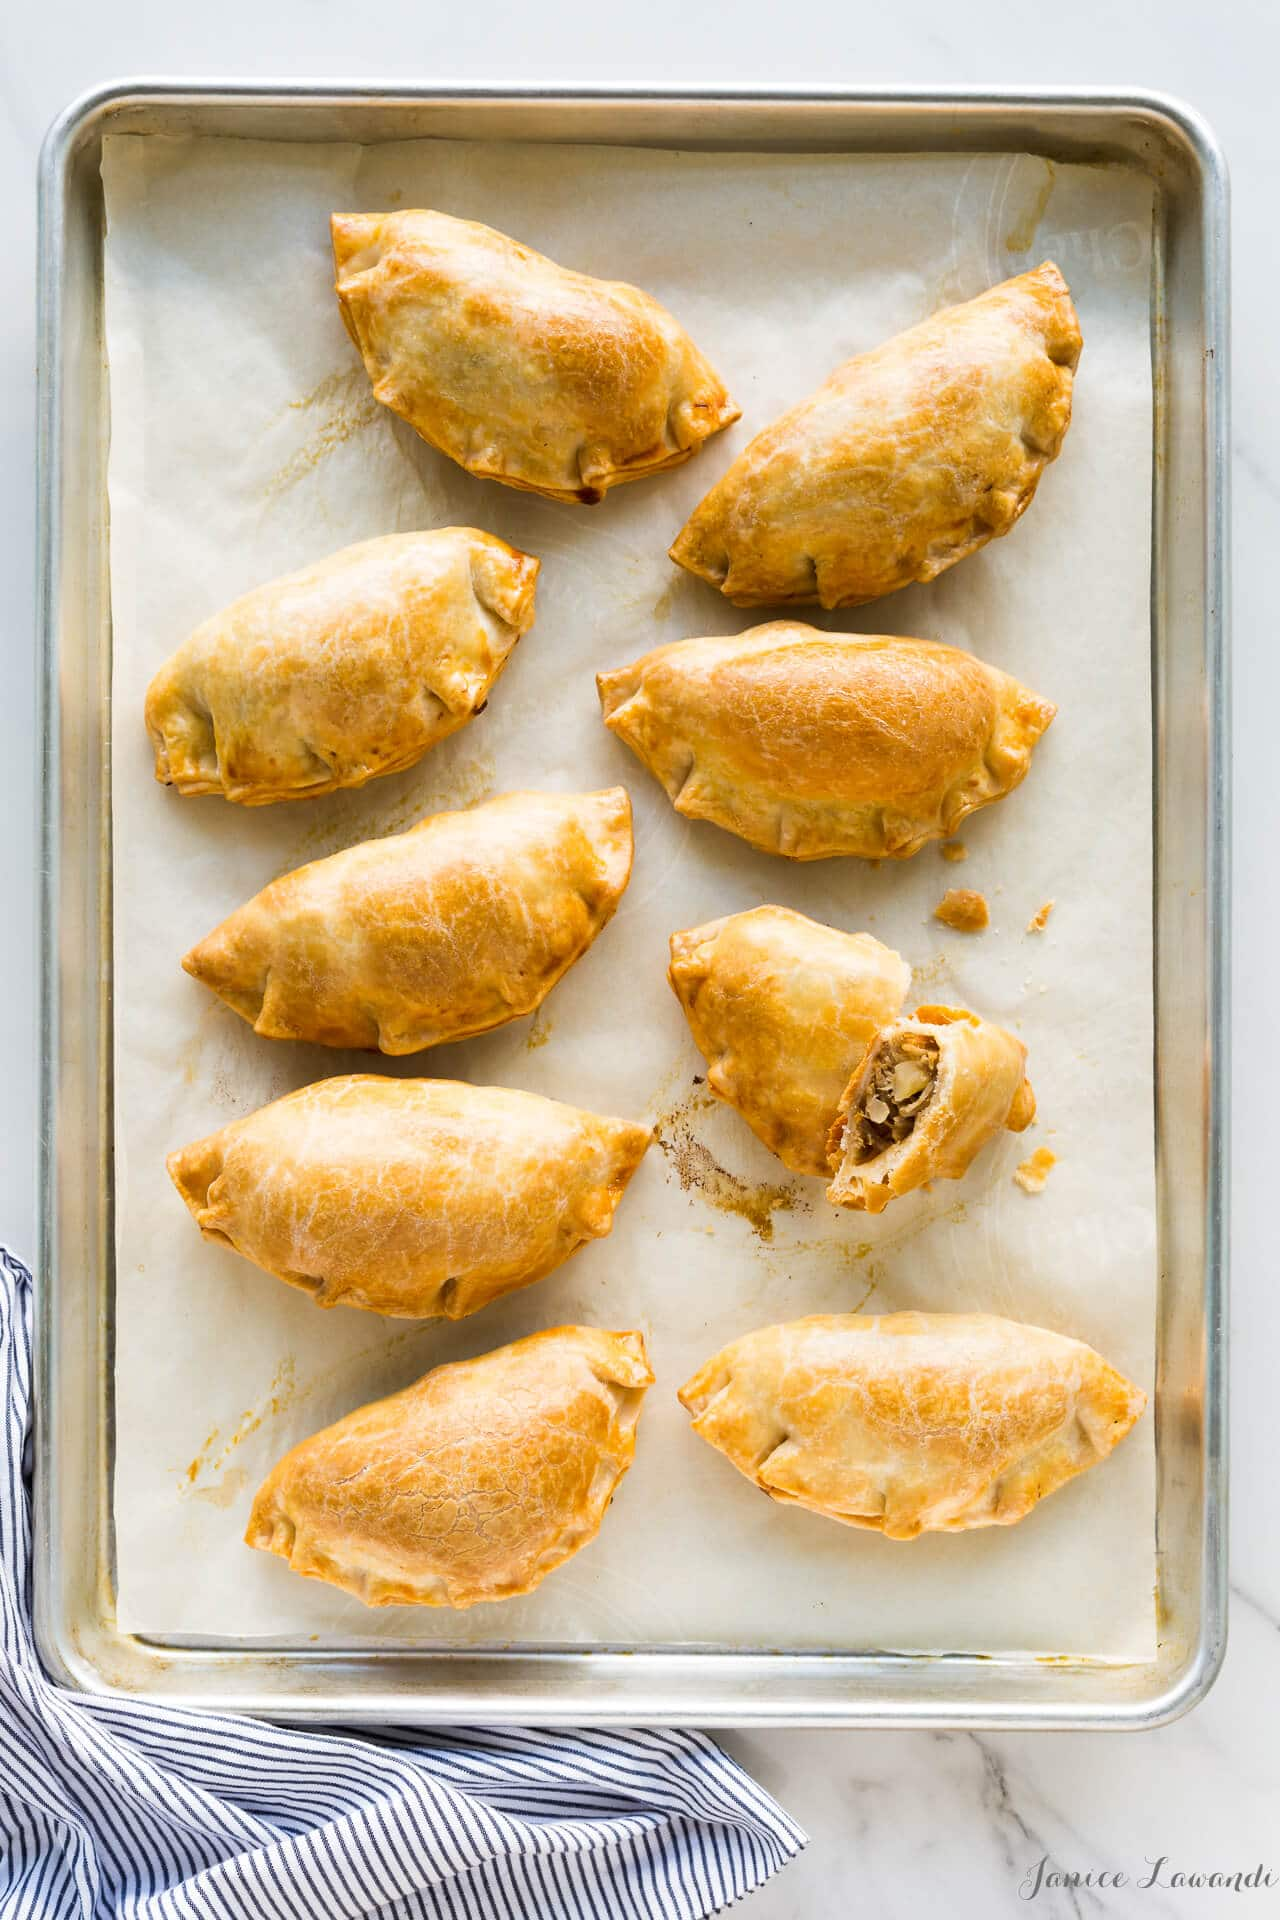 Freshly baked golden brown savoury hand pies with Maple Leaf shredded pork, thyme and apple chunks